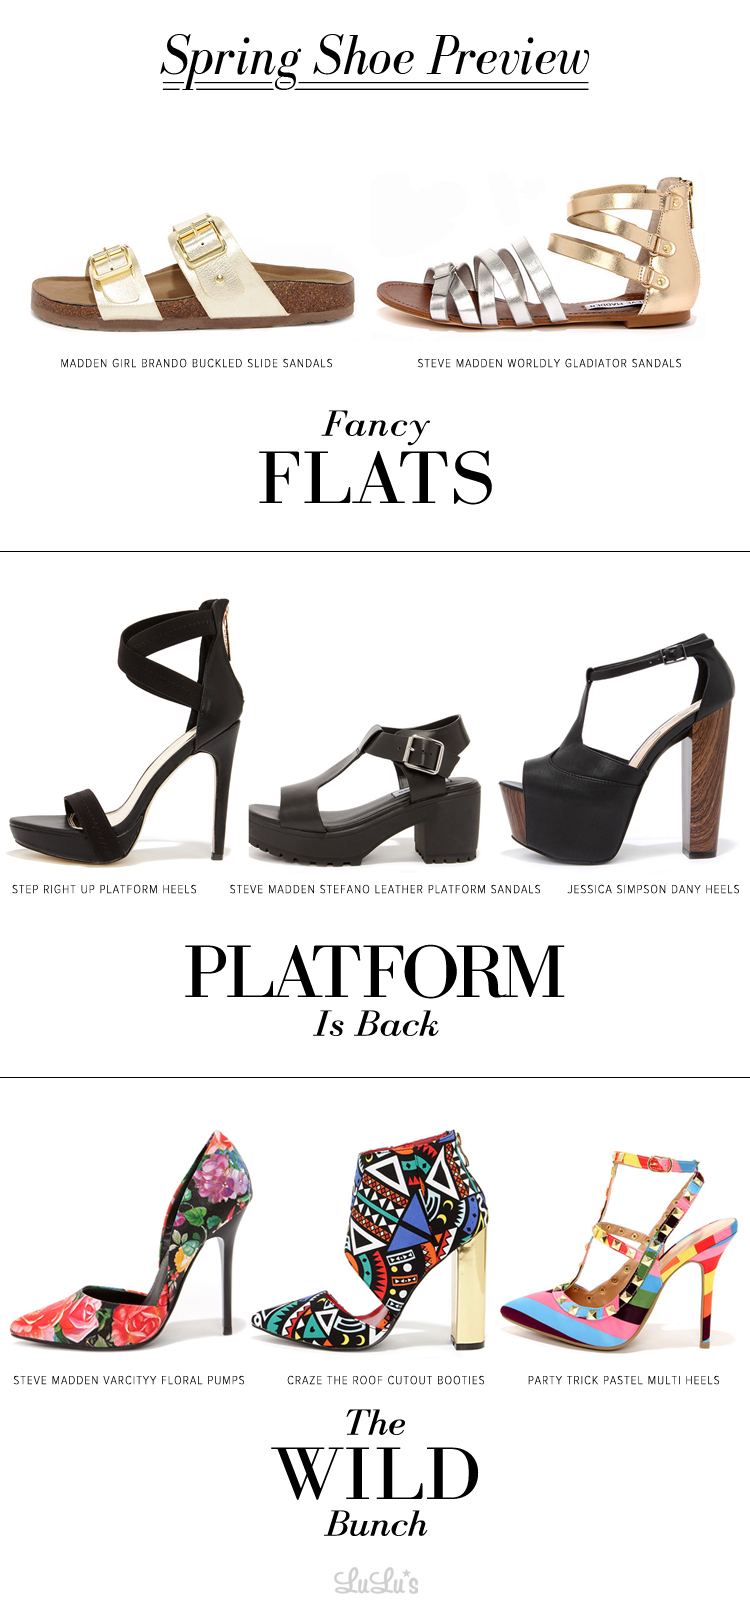 Spring Shoe Preview 2015